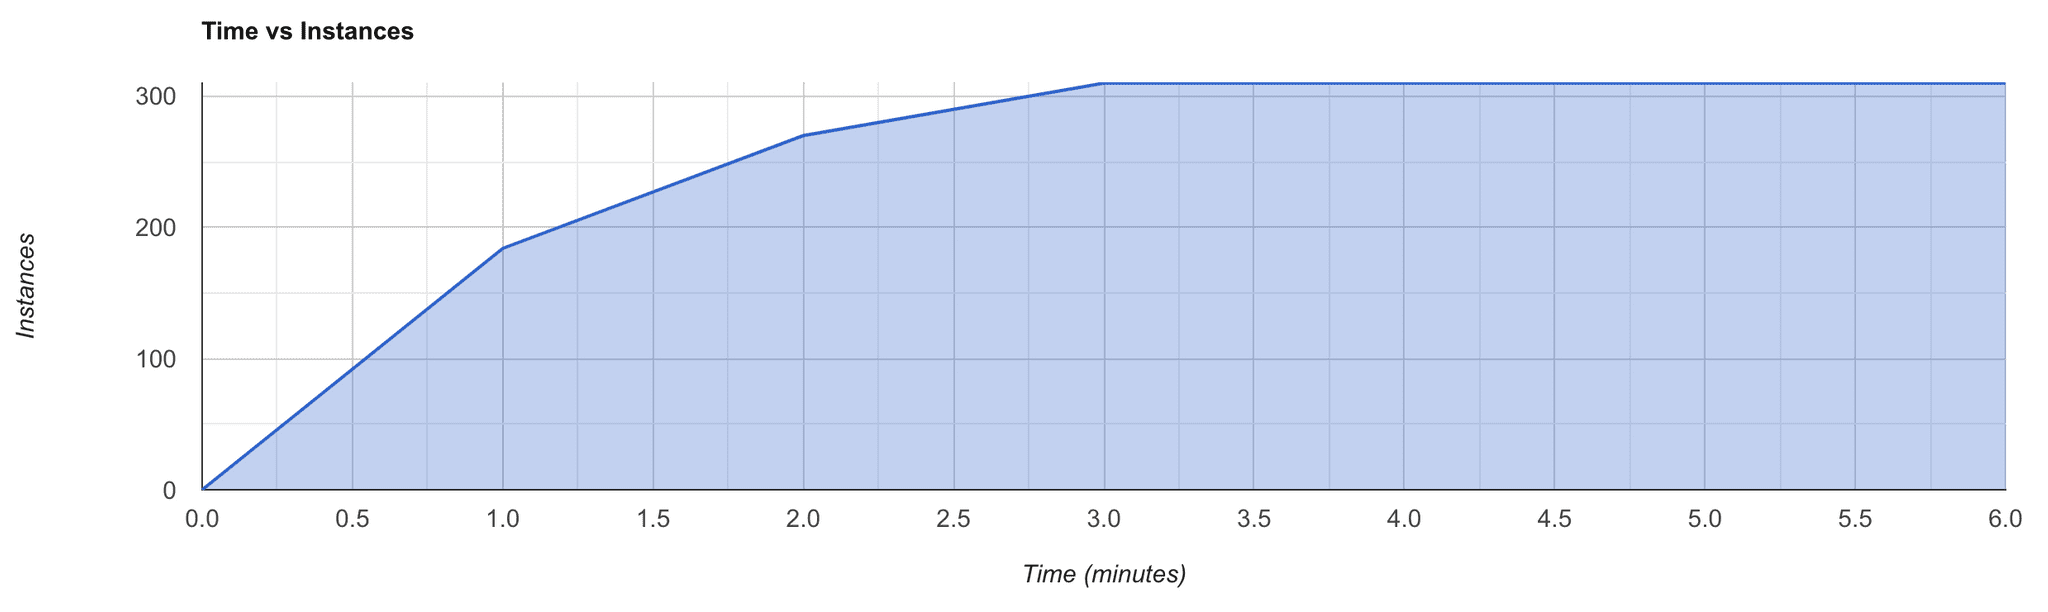 time-vs-instance-graph